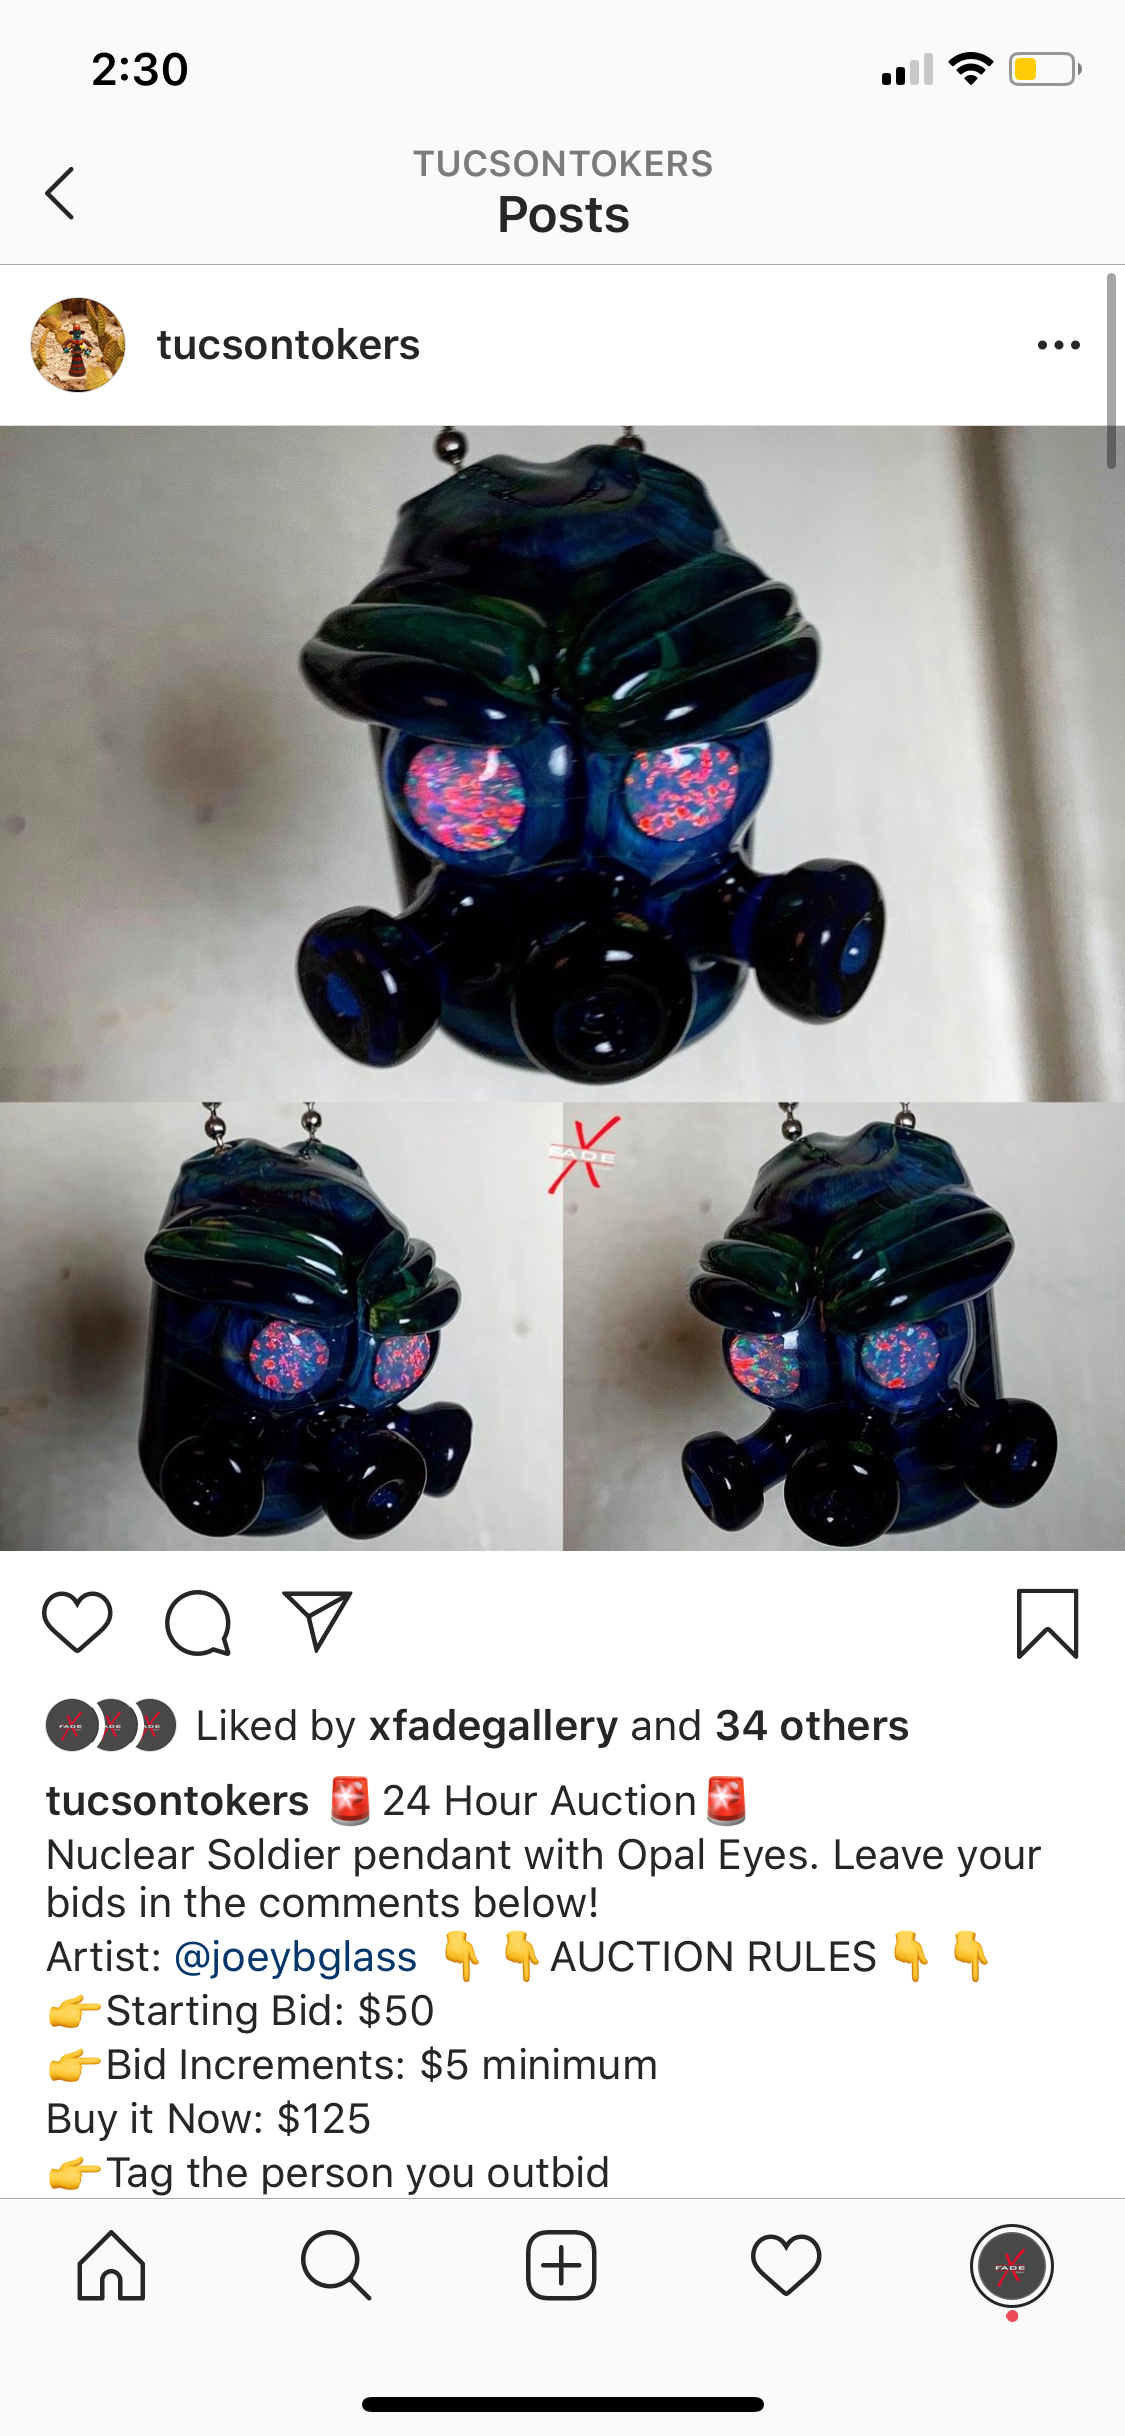 Nuclear Soldier Pendy Art